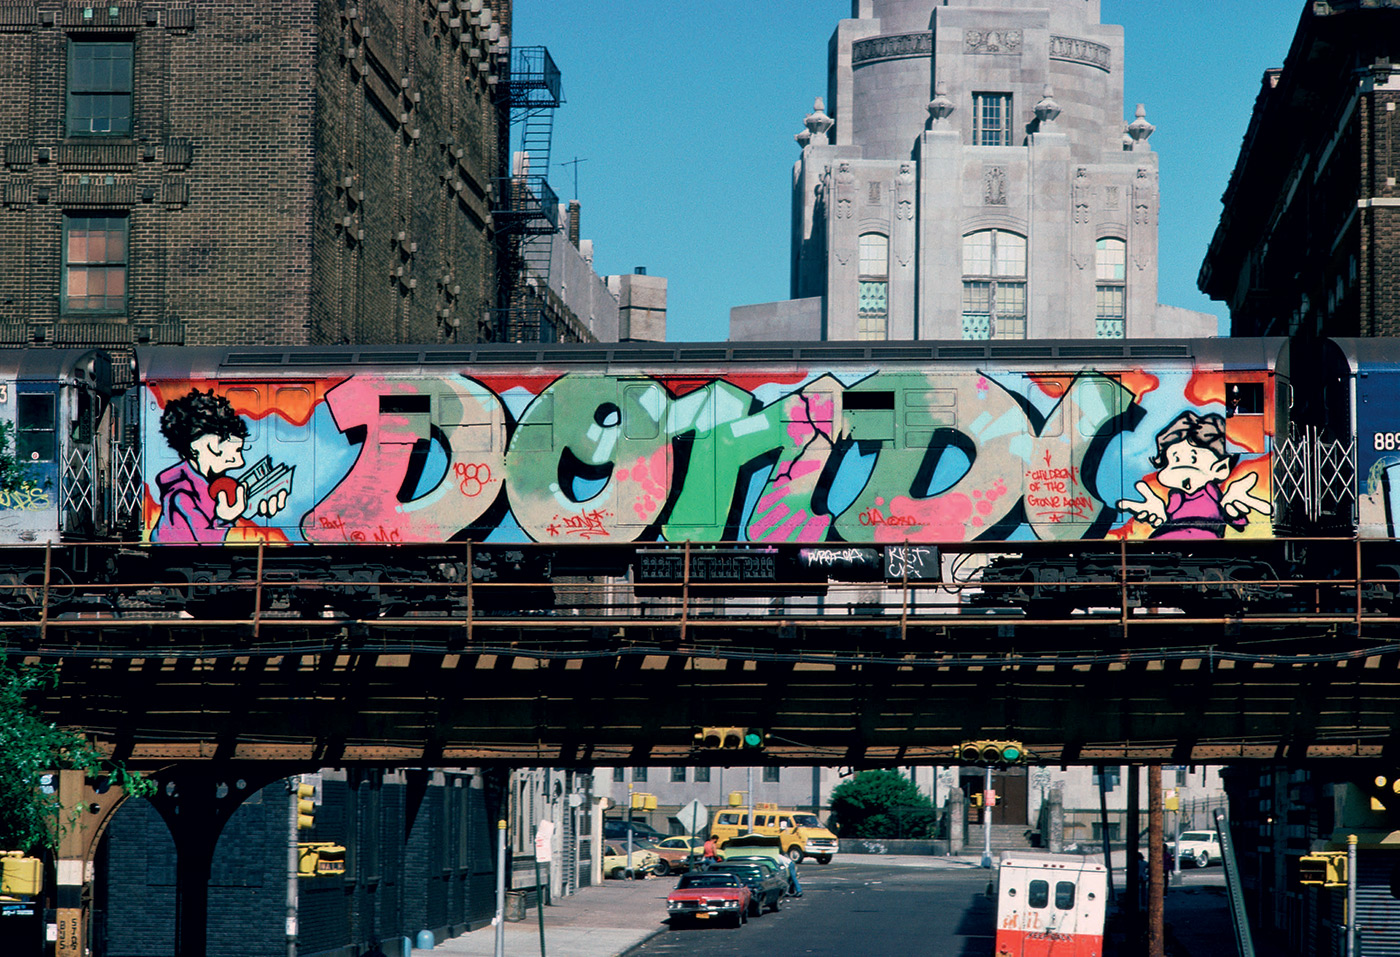 Cute  of the trains and New York City and Chalfant was creating images that tightly focused on the art the duo us work paired well when seen together